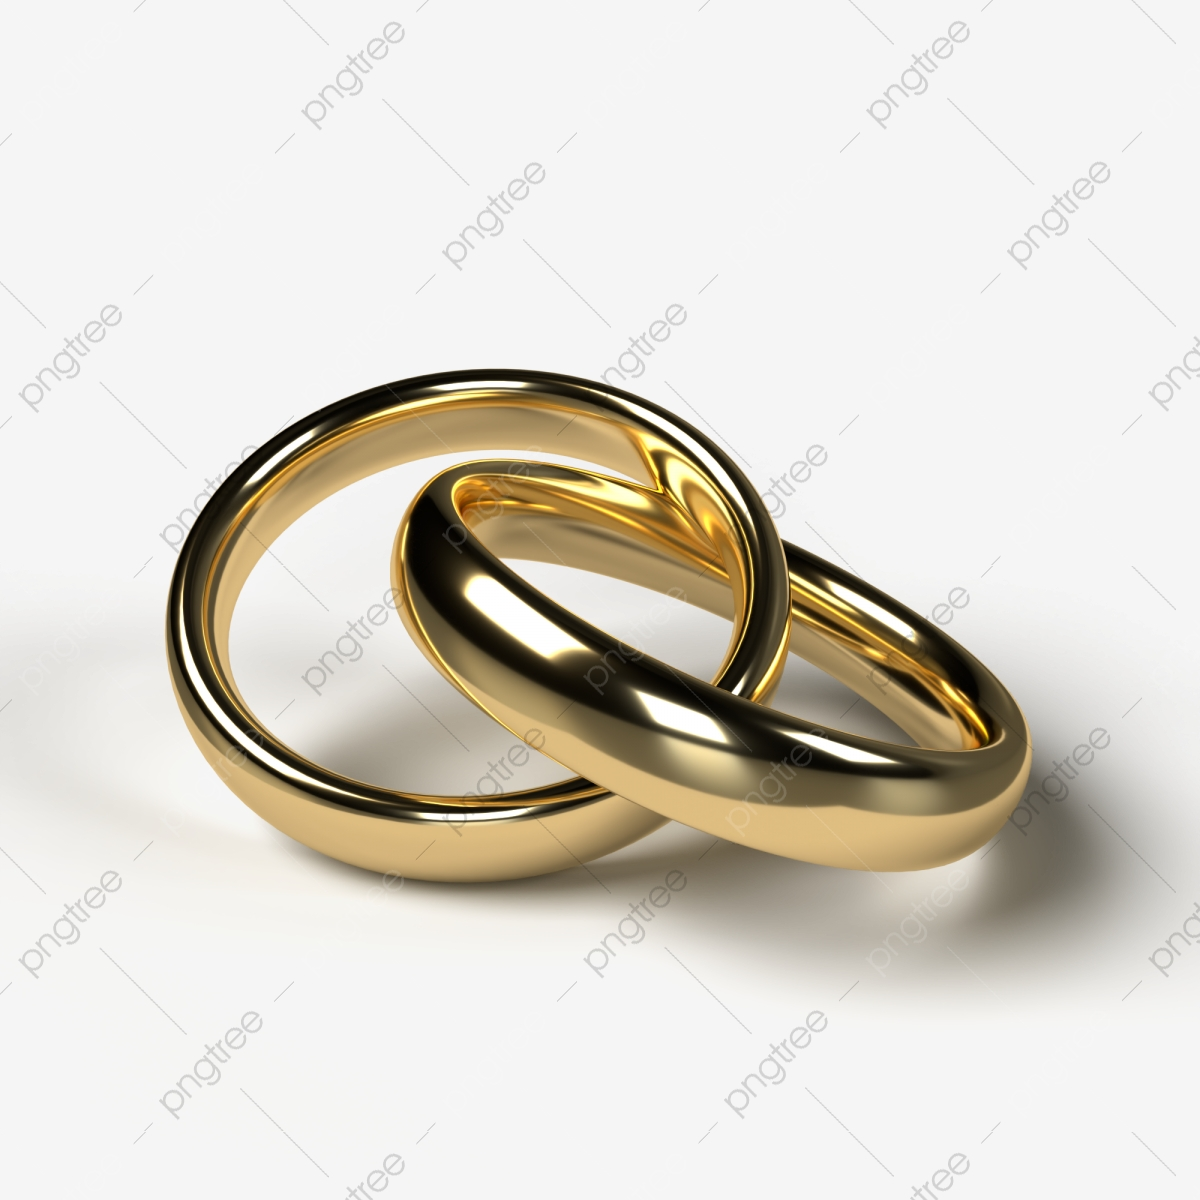 ring png images vector and psd files free download on pngtree https pngtree com freepng a pair of beautiful golden wedding rings on a transparent background 5254746 html